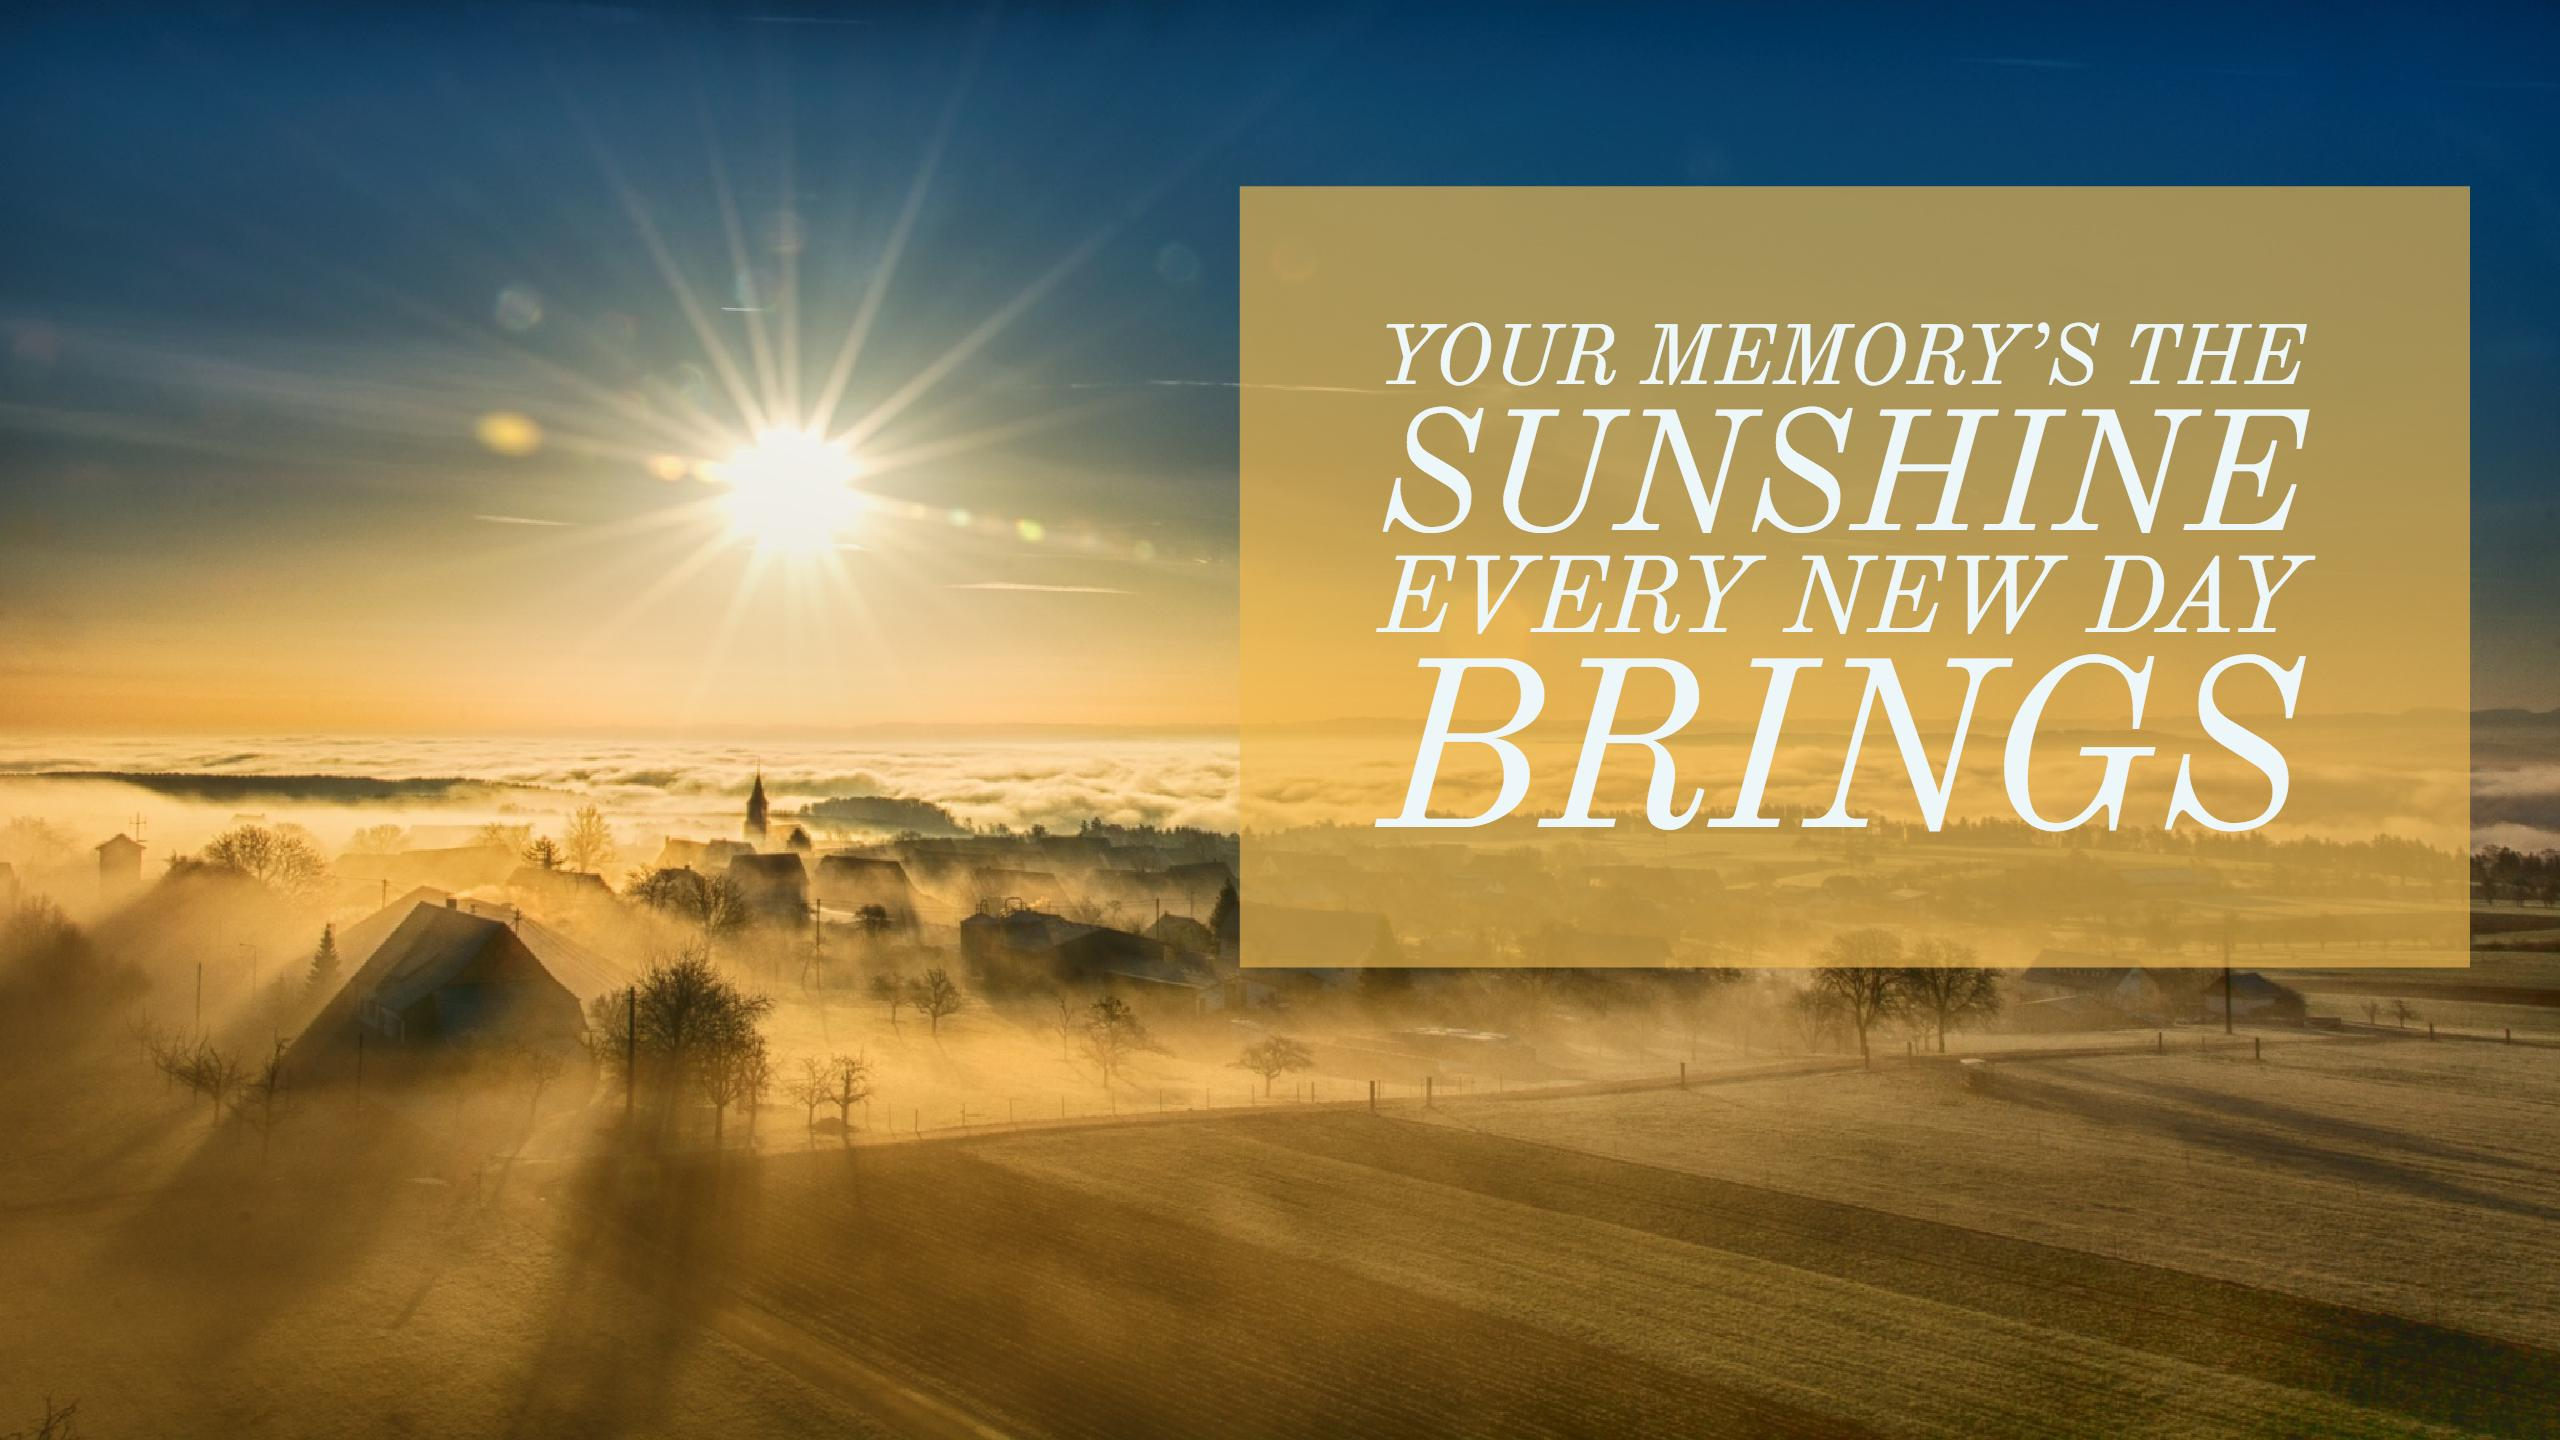 Your memory's the sunshine every new day brings